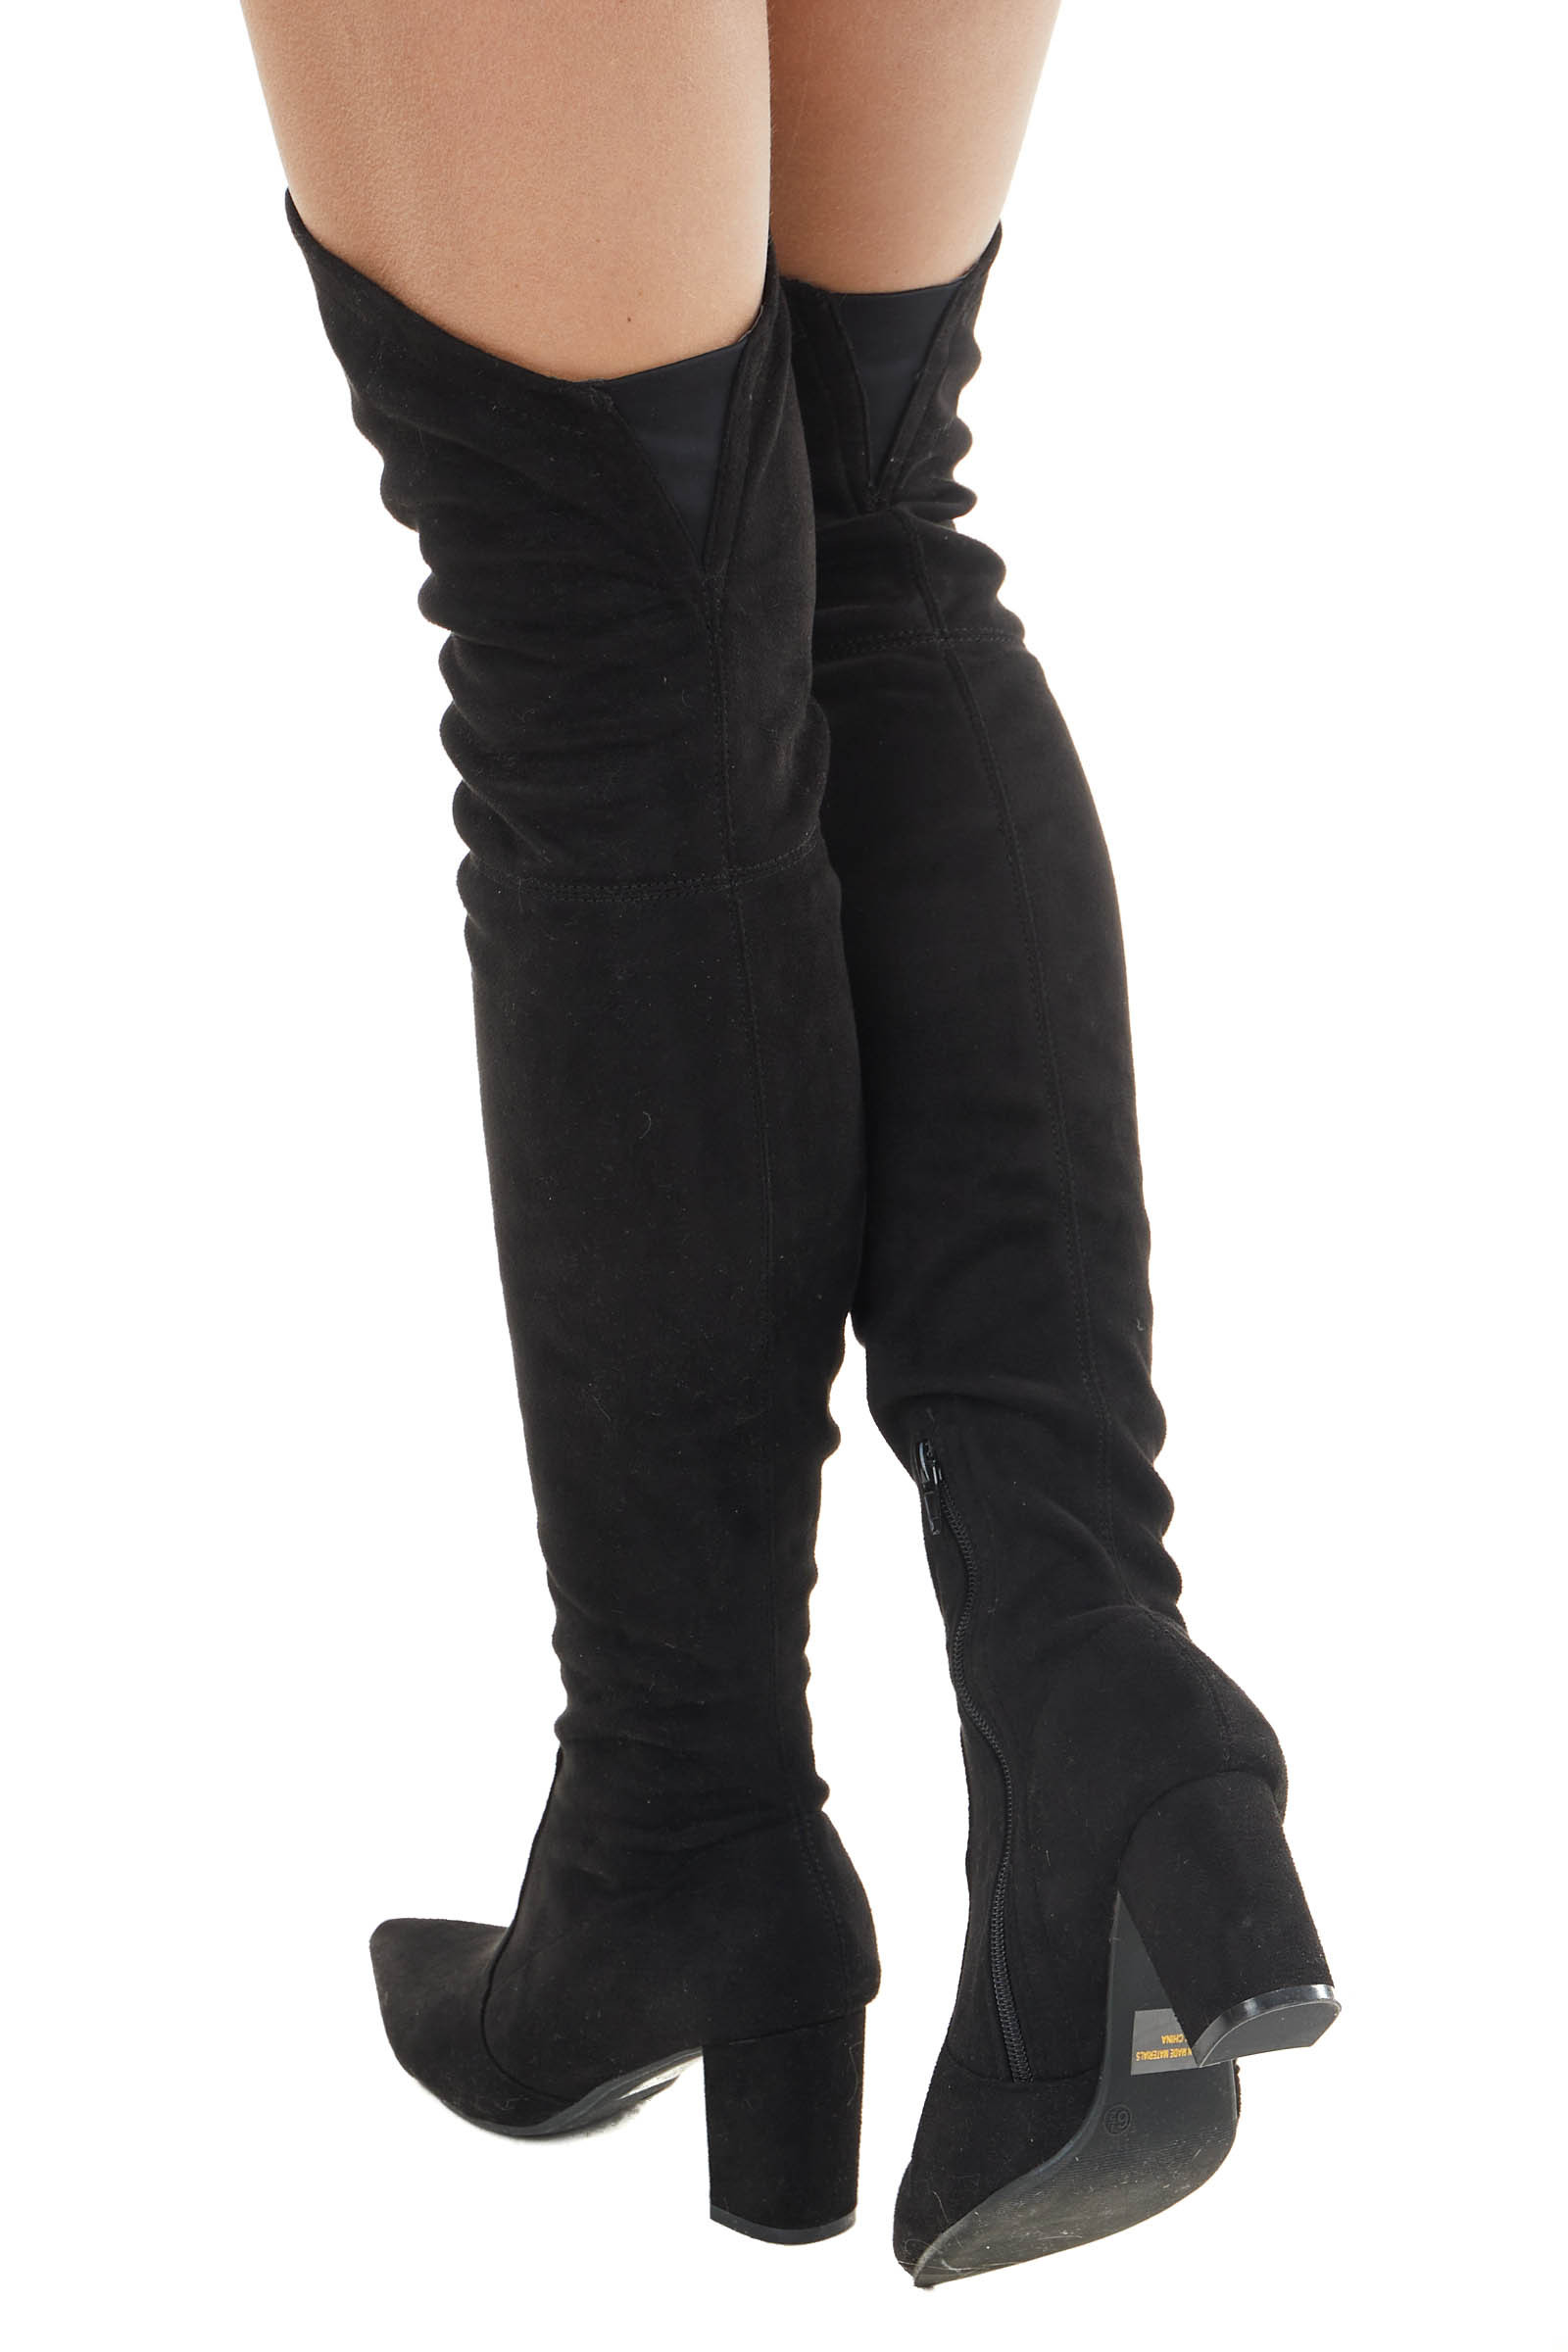 Black Faux Suede Above the Knee High Heel Boot